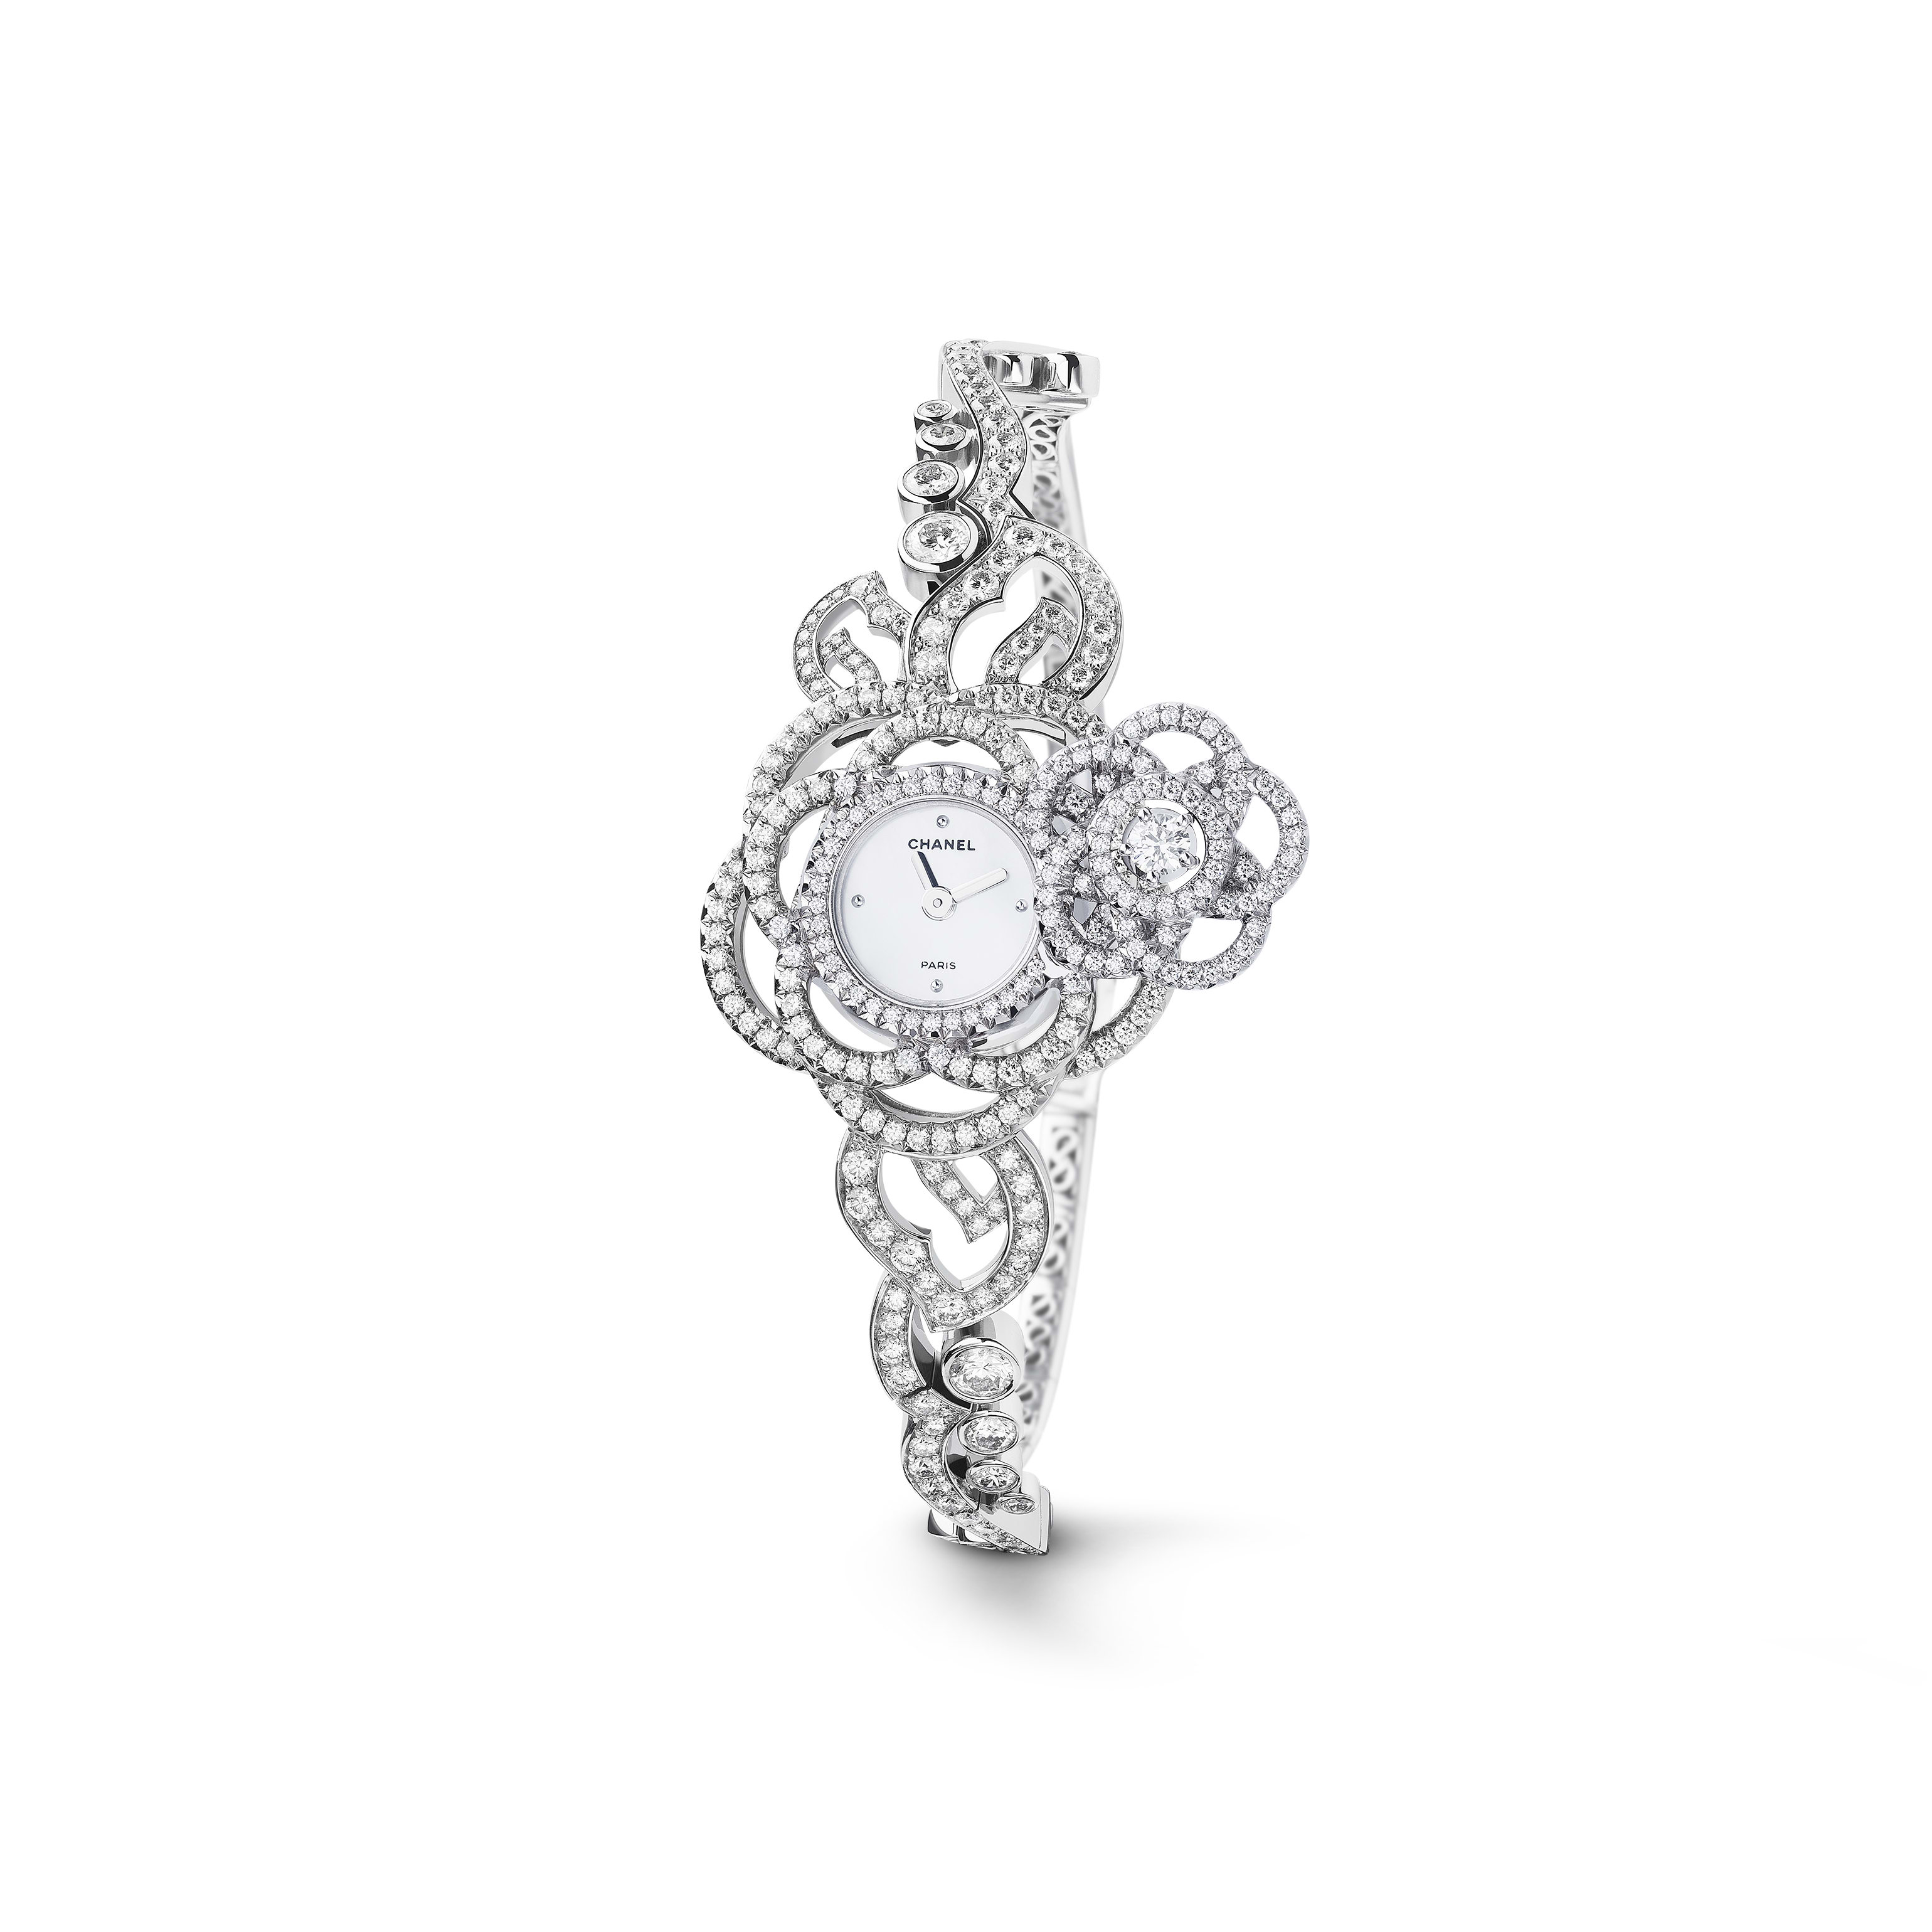 Camélia Jewellery Watch - Secret watch with Camélia Brodé motif in 18K white gold, diamonds and diamond bracelet. Medium version. - CHANEL - Default view - see standard sized version